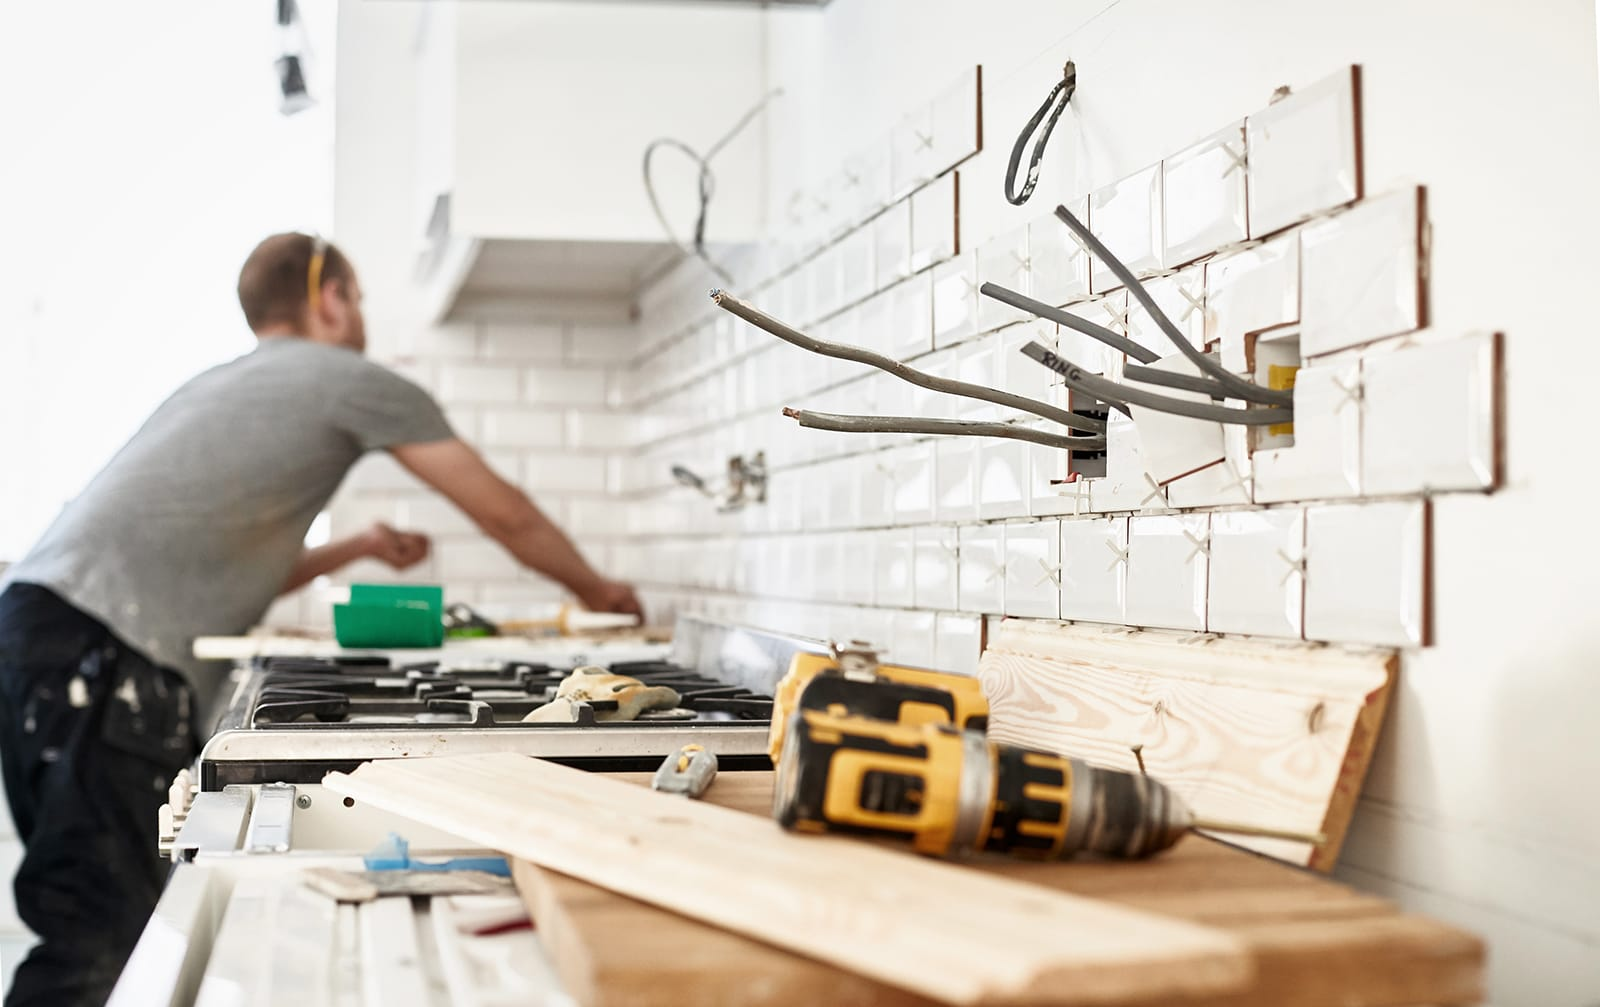 A craftsman is working in a kitchen, a drill lies on some wood in the foreground.